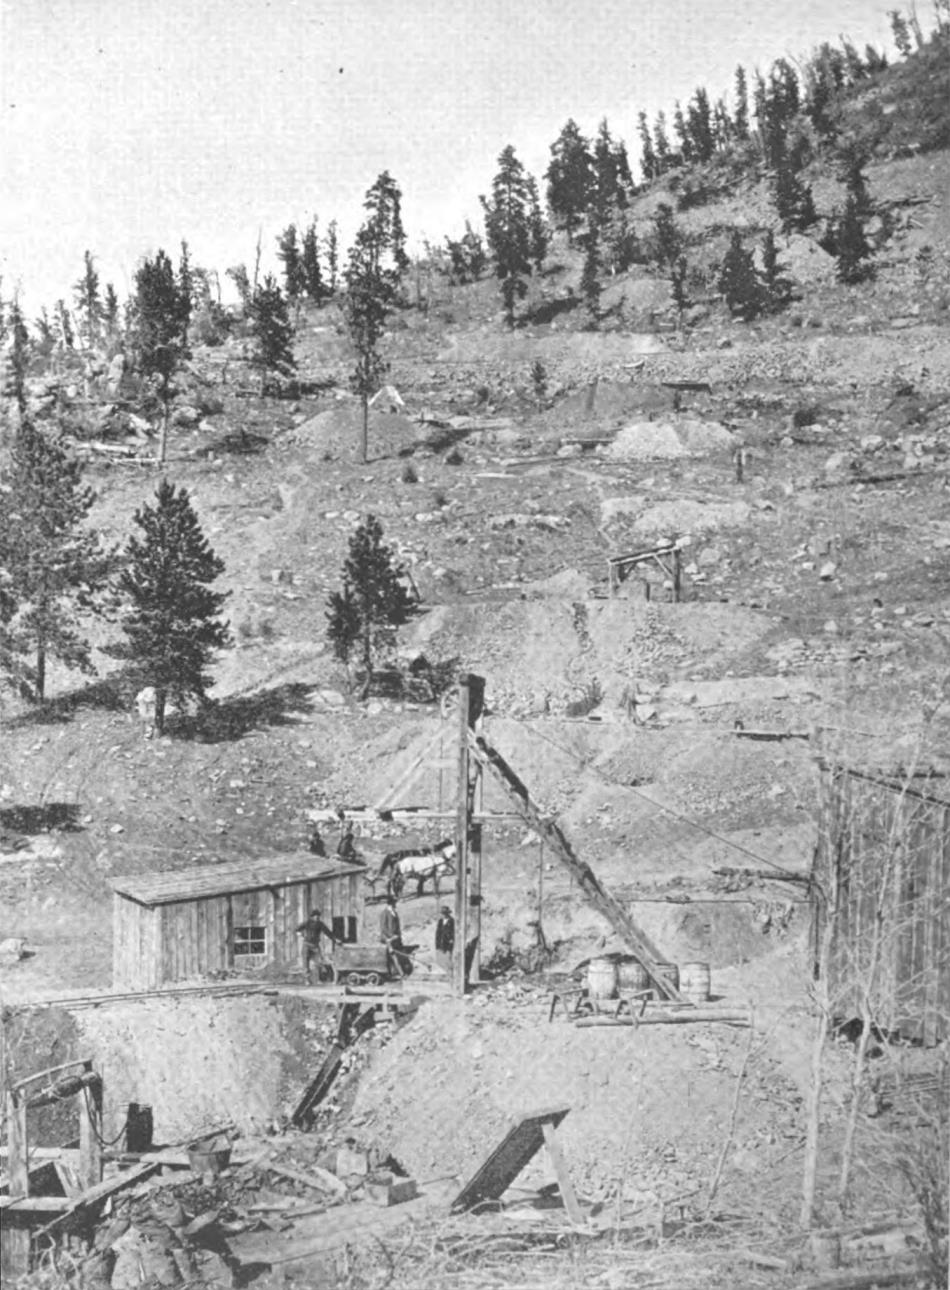 This is a view of the south slope of Squaw Mountain, showing early mine operations on at least 3 claims, where the Climax mine is among those. The mine in the foreground I think is known as Climax No. 2 as it is located on the Climax No. 2 lode, which was below Climax No. 1 lode. The Santa Rita lode cuts through the former mention claims, but which of the mine operations is on that claim is hard to make out.    About 1/4 from the top there is a railroad grade, which I think is the F. & C.C. grade. Further up, about half-way to the top of the image I think the M.T. roadbed is seen on the right-hand side of this view.    Between the two railroad grades, when looking at the DPL view, I see about 1/6 from right-hand side and same from top, what appears to be a adit opening and a small dump is seen in front of it among the trees. This do not show up on either the Climax or Santa Rita claim maps. There is a shaft mention on the Climax maps, inside the ground that is part of the Santa Rita claim, it might be that. This due to the photo shows a second dump and a small open single slope shed a little more to the left and further down the hill, above the lower railroad grade, and that shed/dump fits as the Discovery shaft on the Santa Rita claim map.    But, from below the railroad grade, nothing fits the known claim maps, as there should be a Tunnel with a Tunnel House and an ore bin in that area for the Climax lodes, and nothing like that is seen in this view. Of course, they can be gone be the time this view was made, or possible it is outside the view, I do not know, all I know is that this view is marked as showing the Santa Rita and the Climax No. 2 mines in an 1896 book.